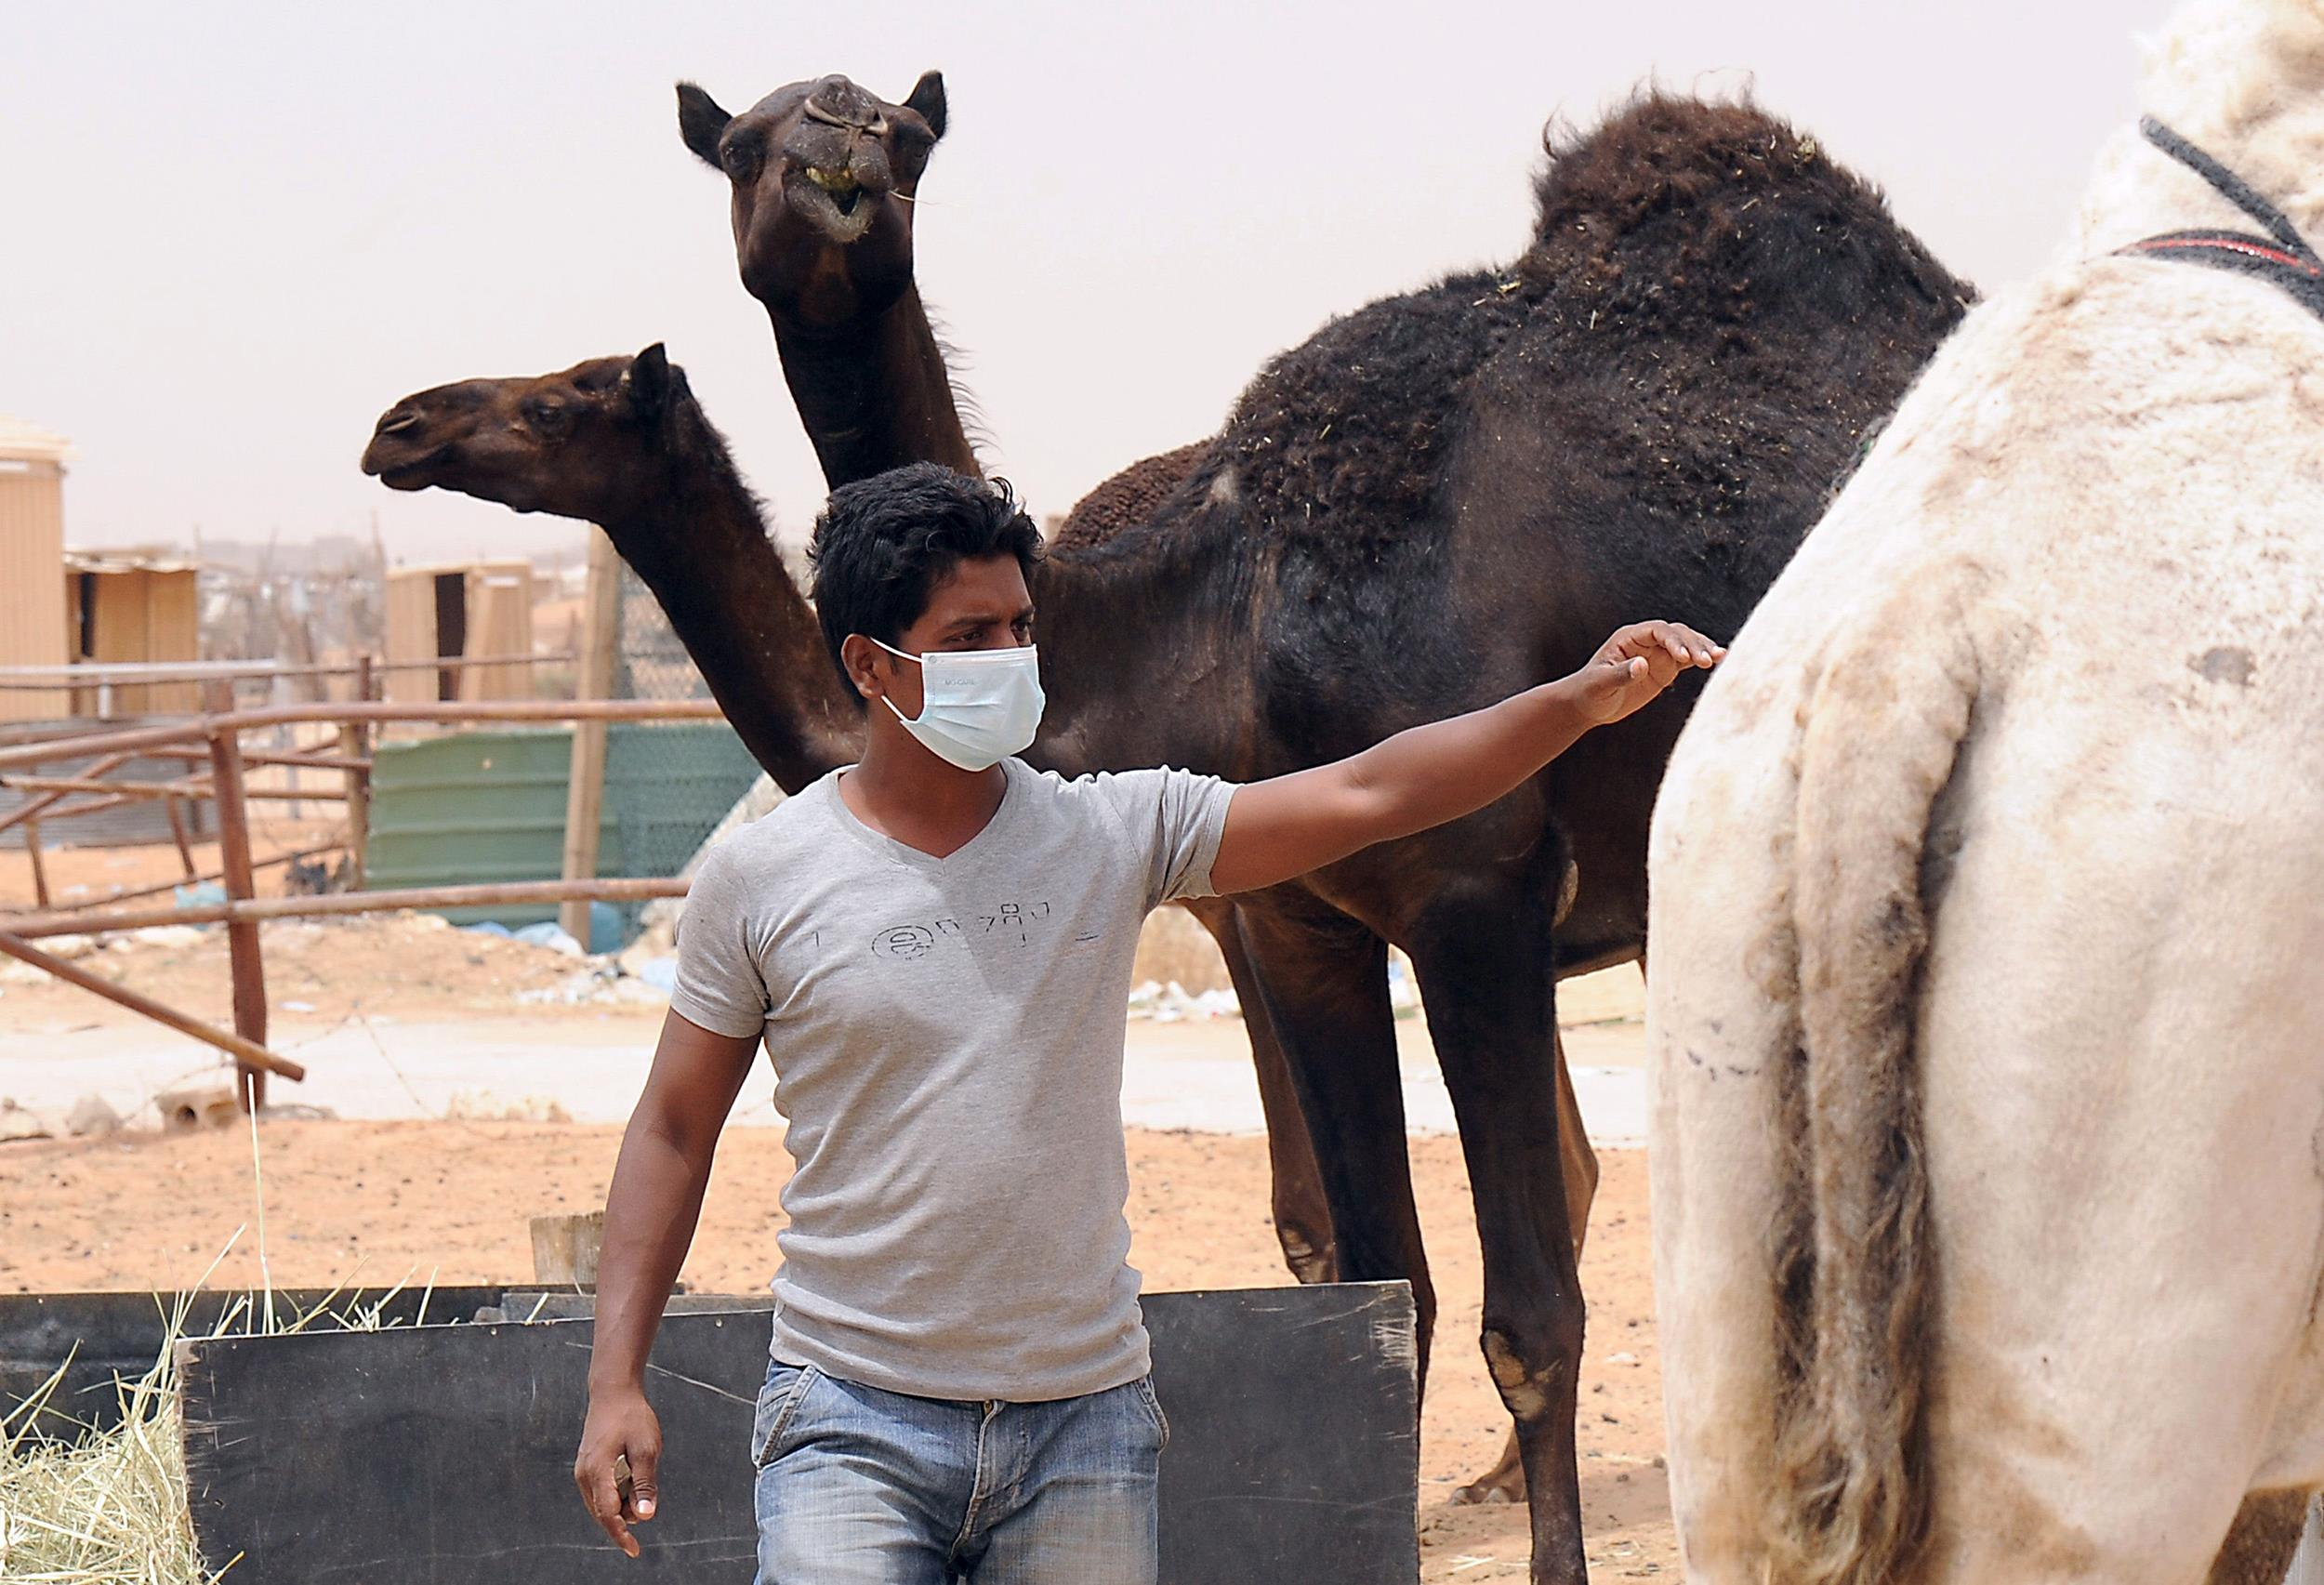 Image: An Indian worker wears a mouth and nose mask next to camels as he works at his Saudi employer's farm